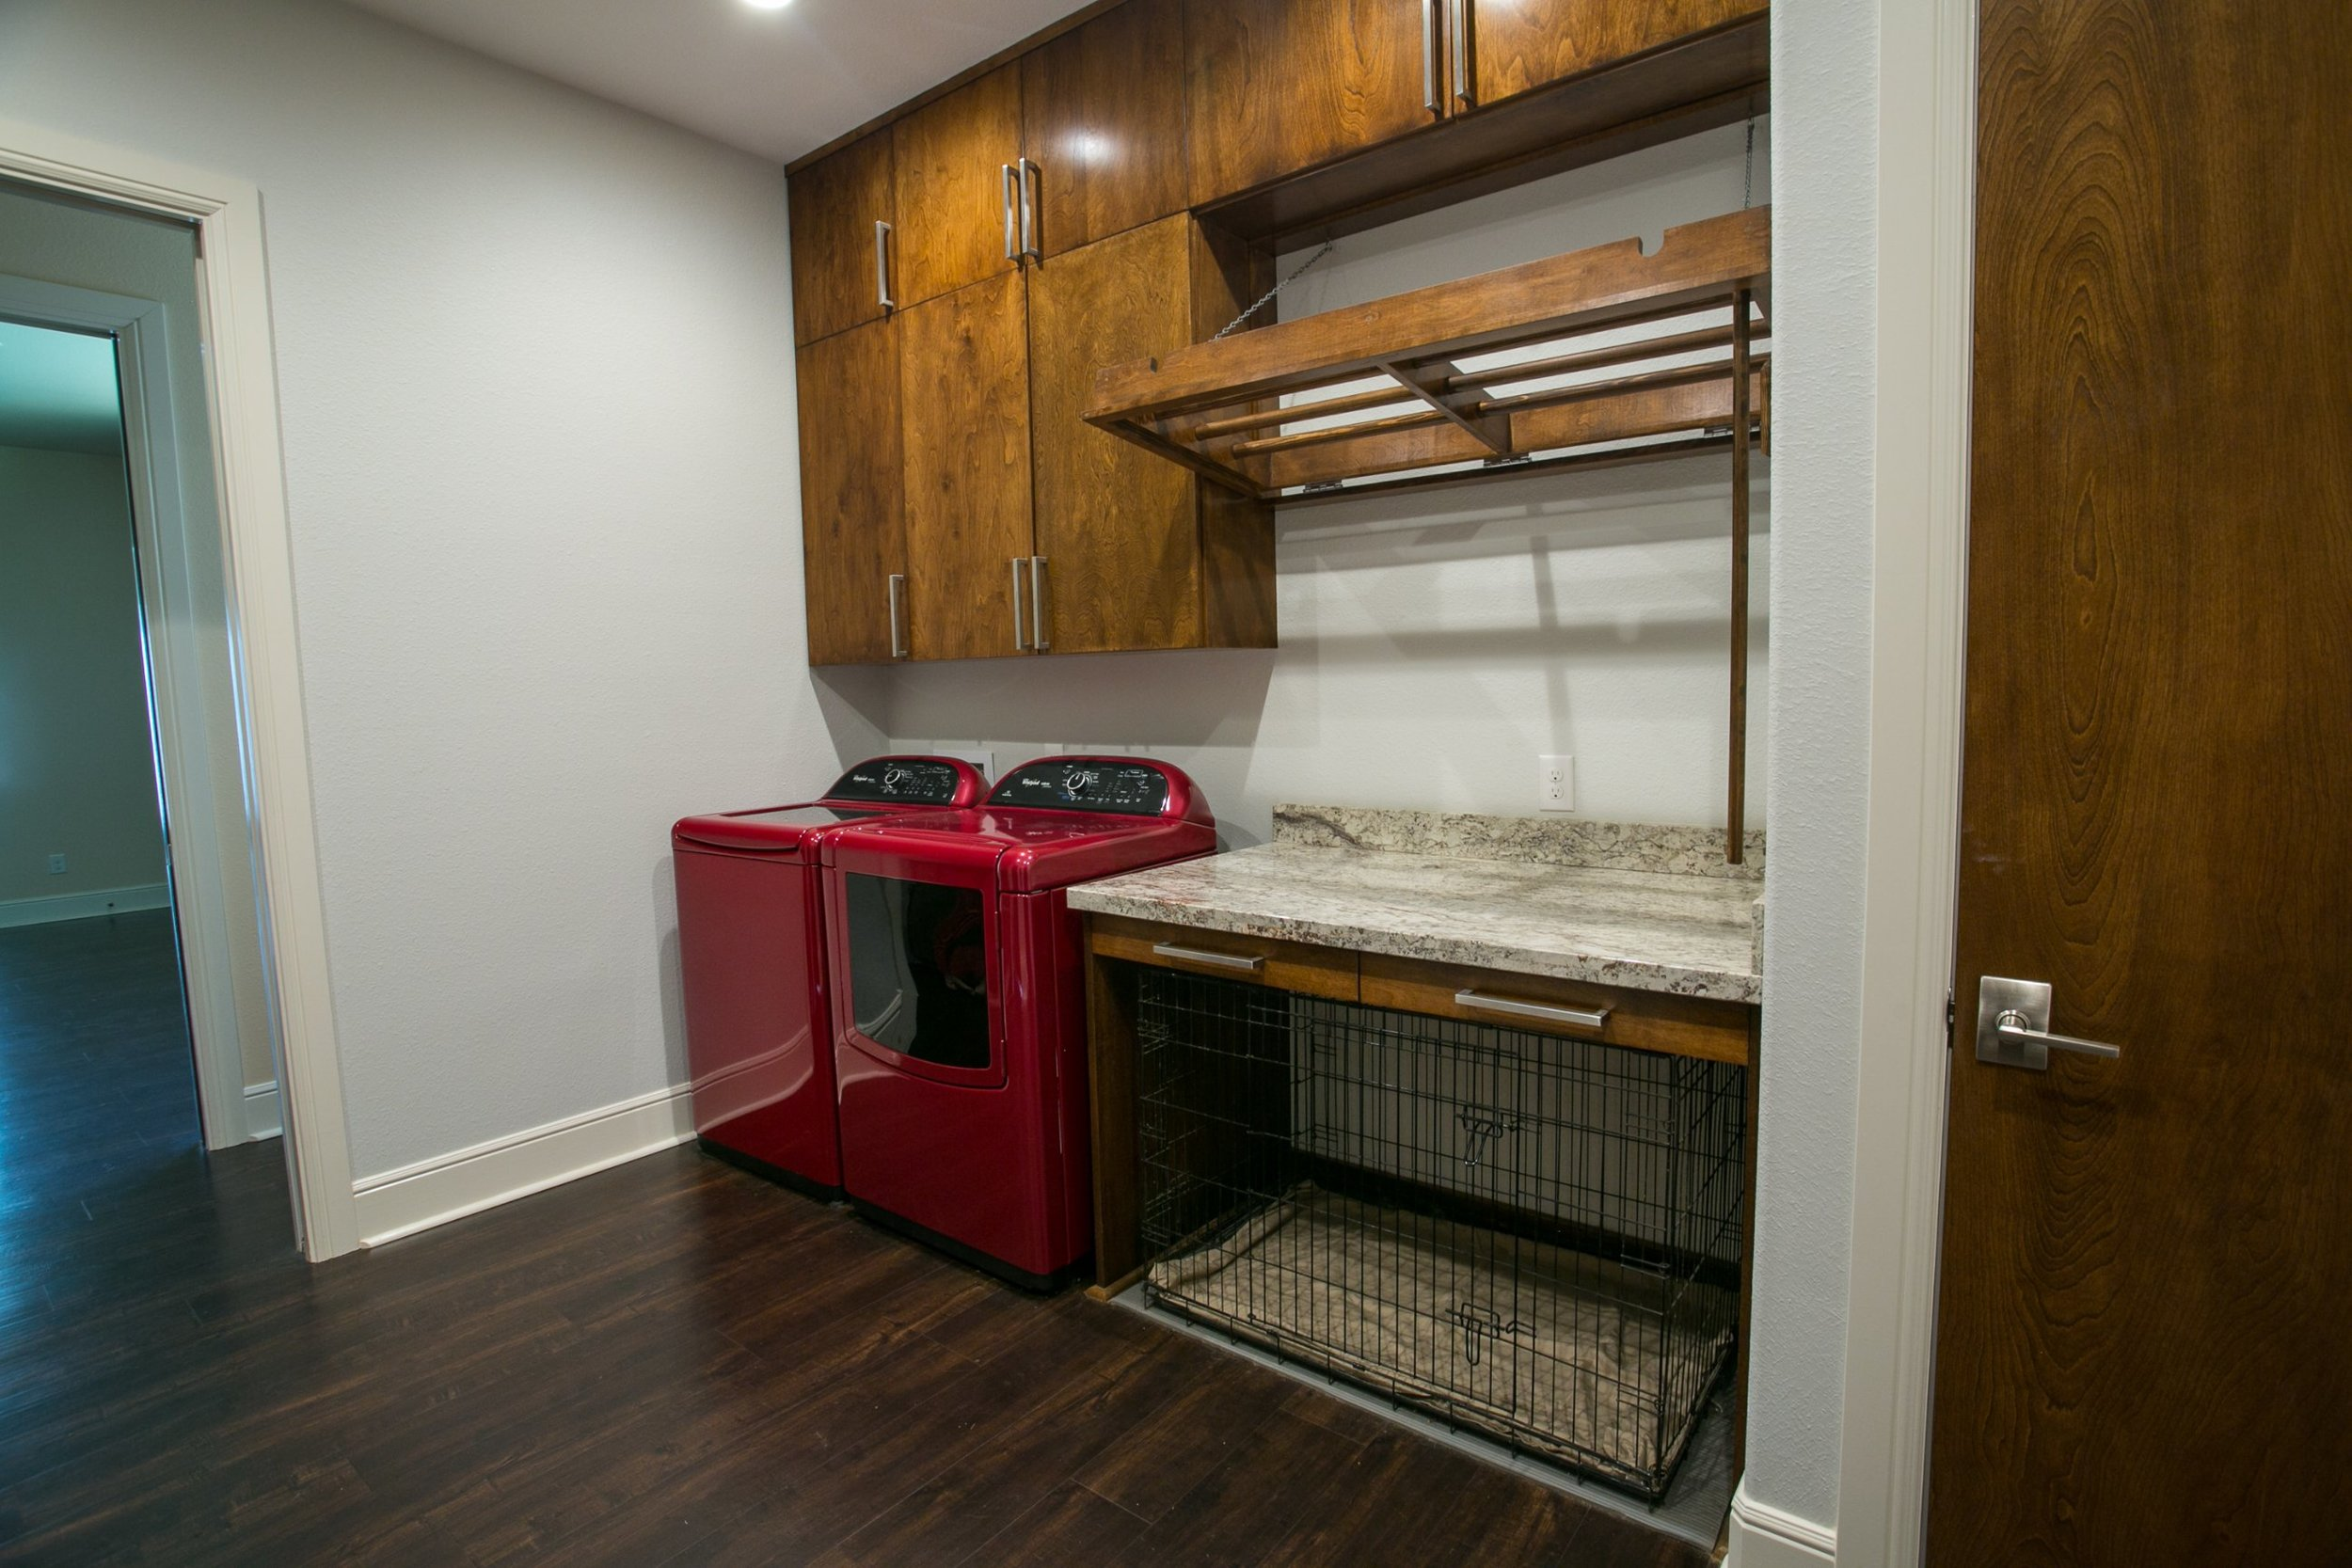 Laundry room with space for dog crate - ambiance interior design